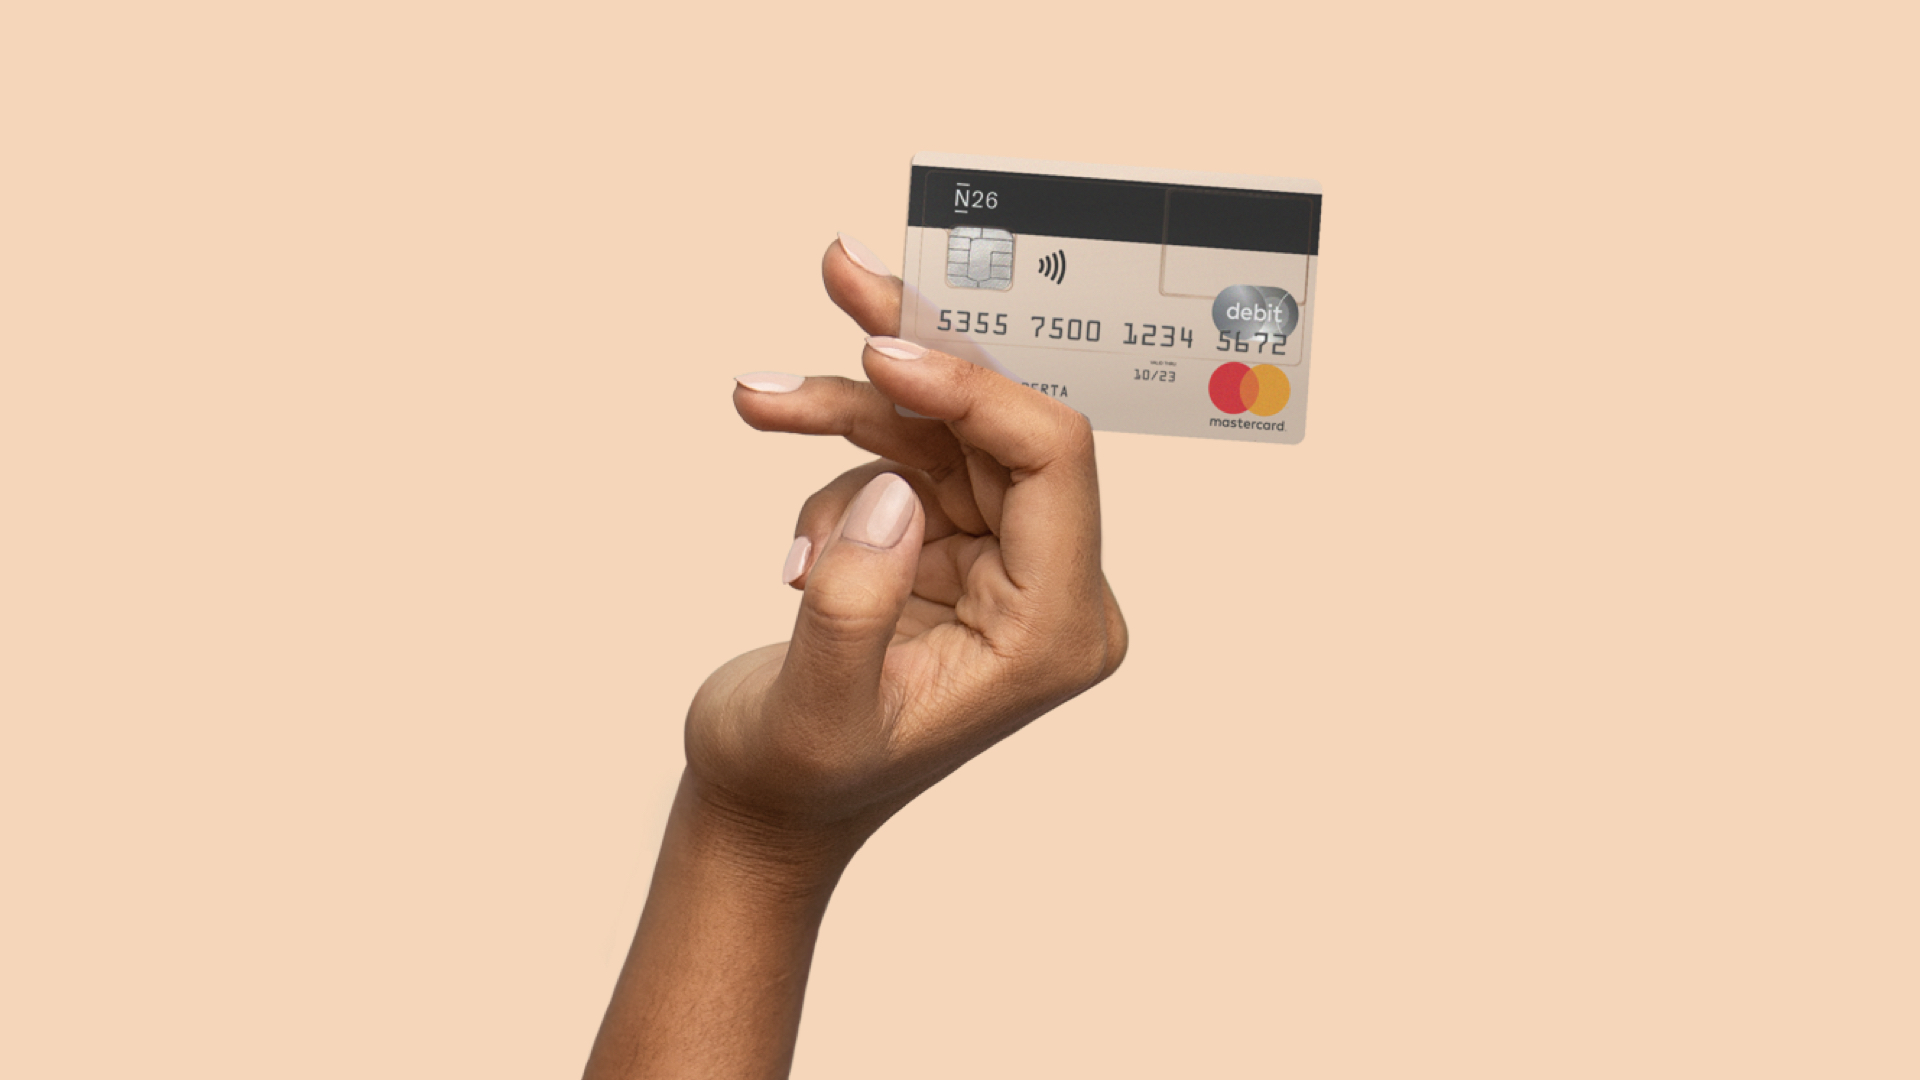 N26 Press Image of our 26 reasons campaign with a hand holding a free bank account mastercard debitcard